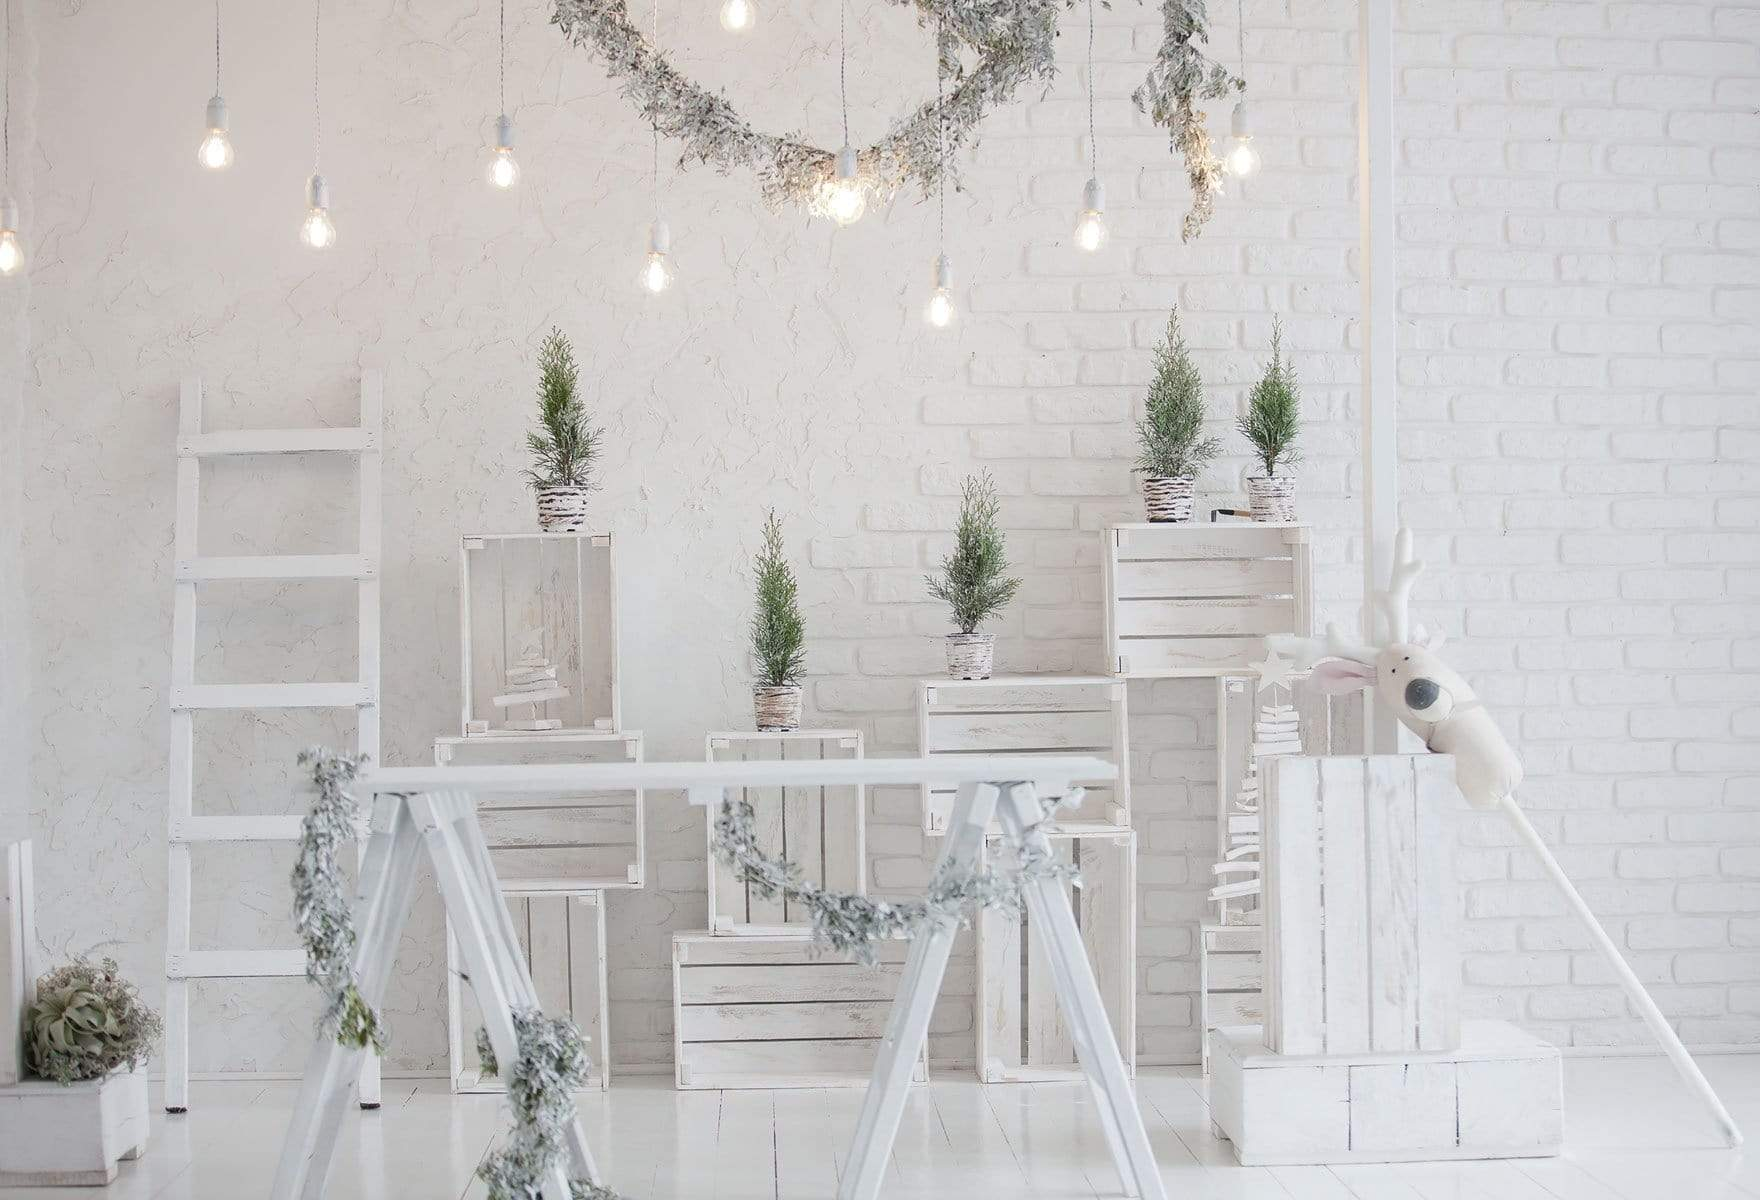 Load image into Gallery viewer, Kate Christmas White Room with Potted Plant Decorations Backdrop